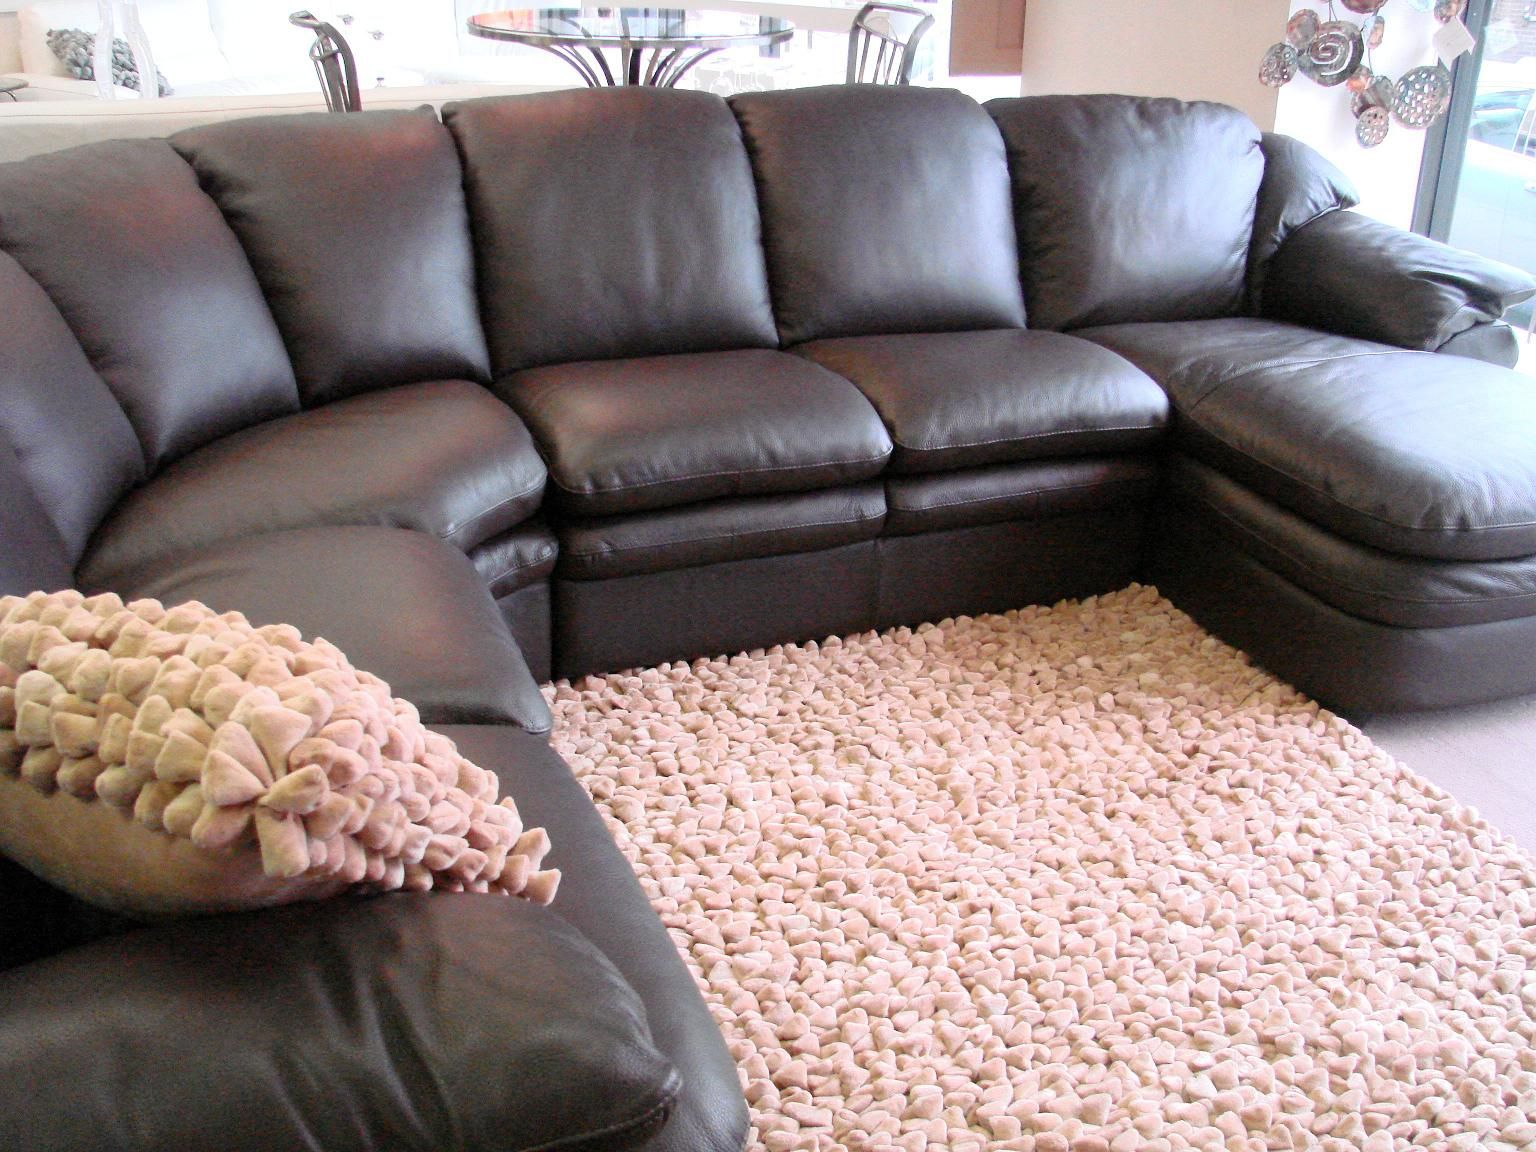 Black leather sectionals on sale - Best 25 Leather Couches For Sale Ideas On Pinterest Leather Sofa Sale Couches On Sale And Tan Leather Couches